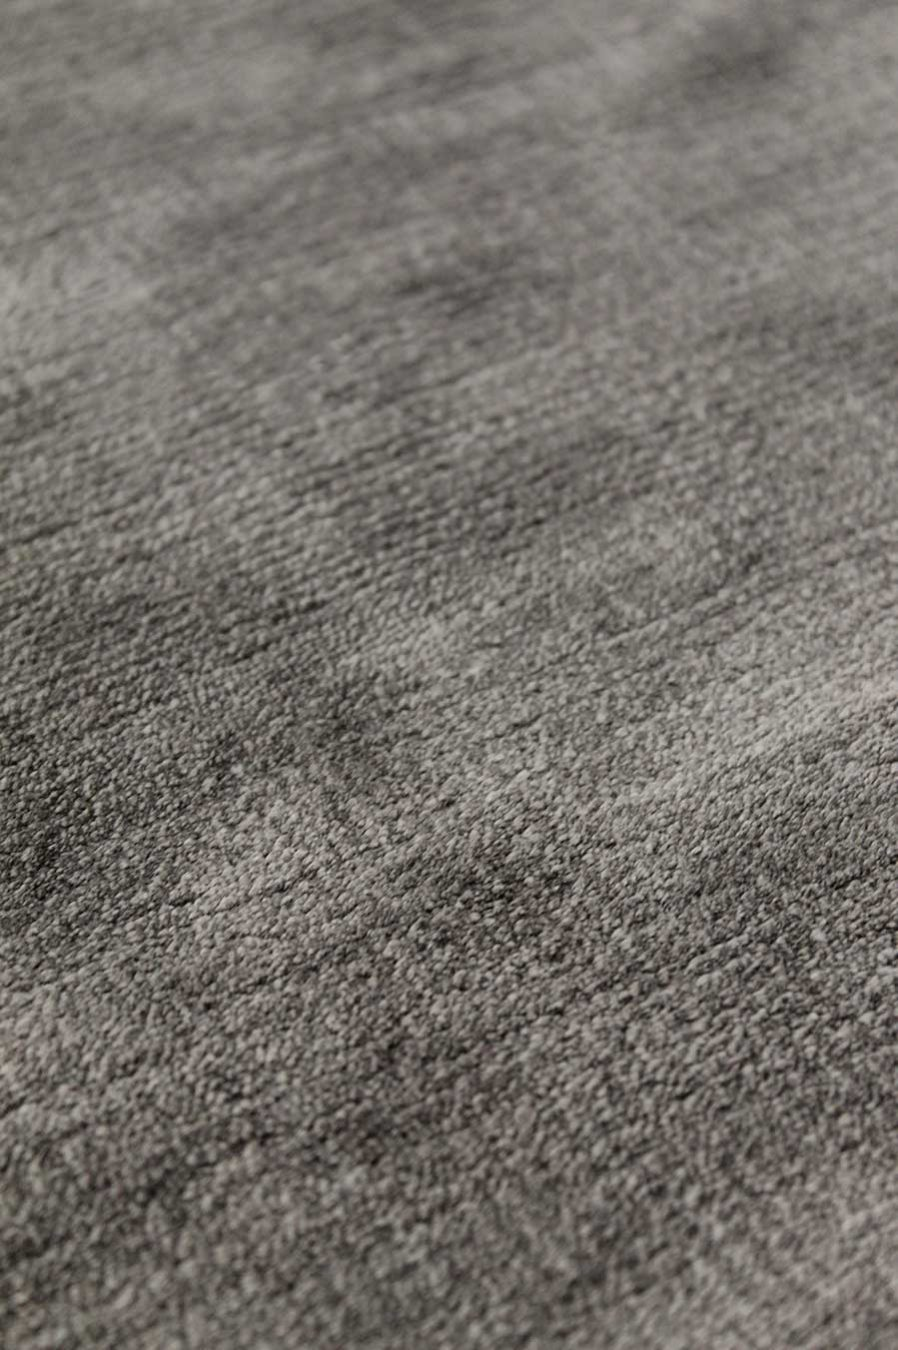 Detailed view of metallic Glam rug in brown colour